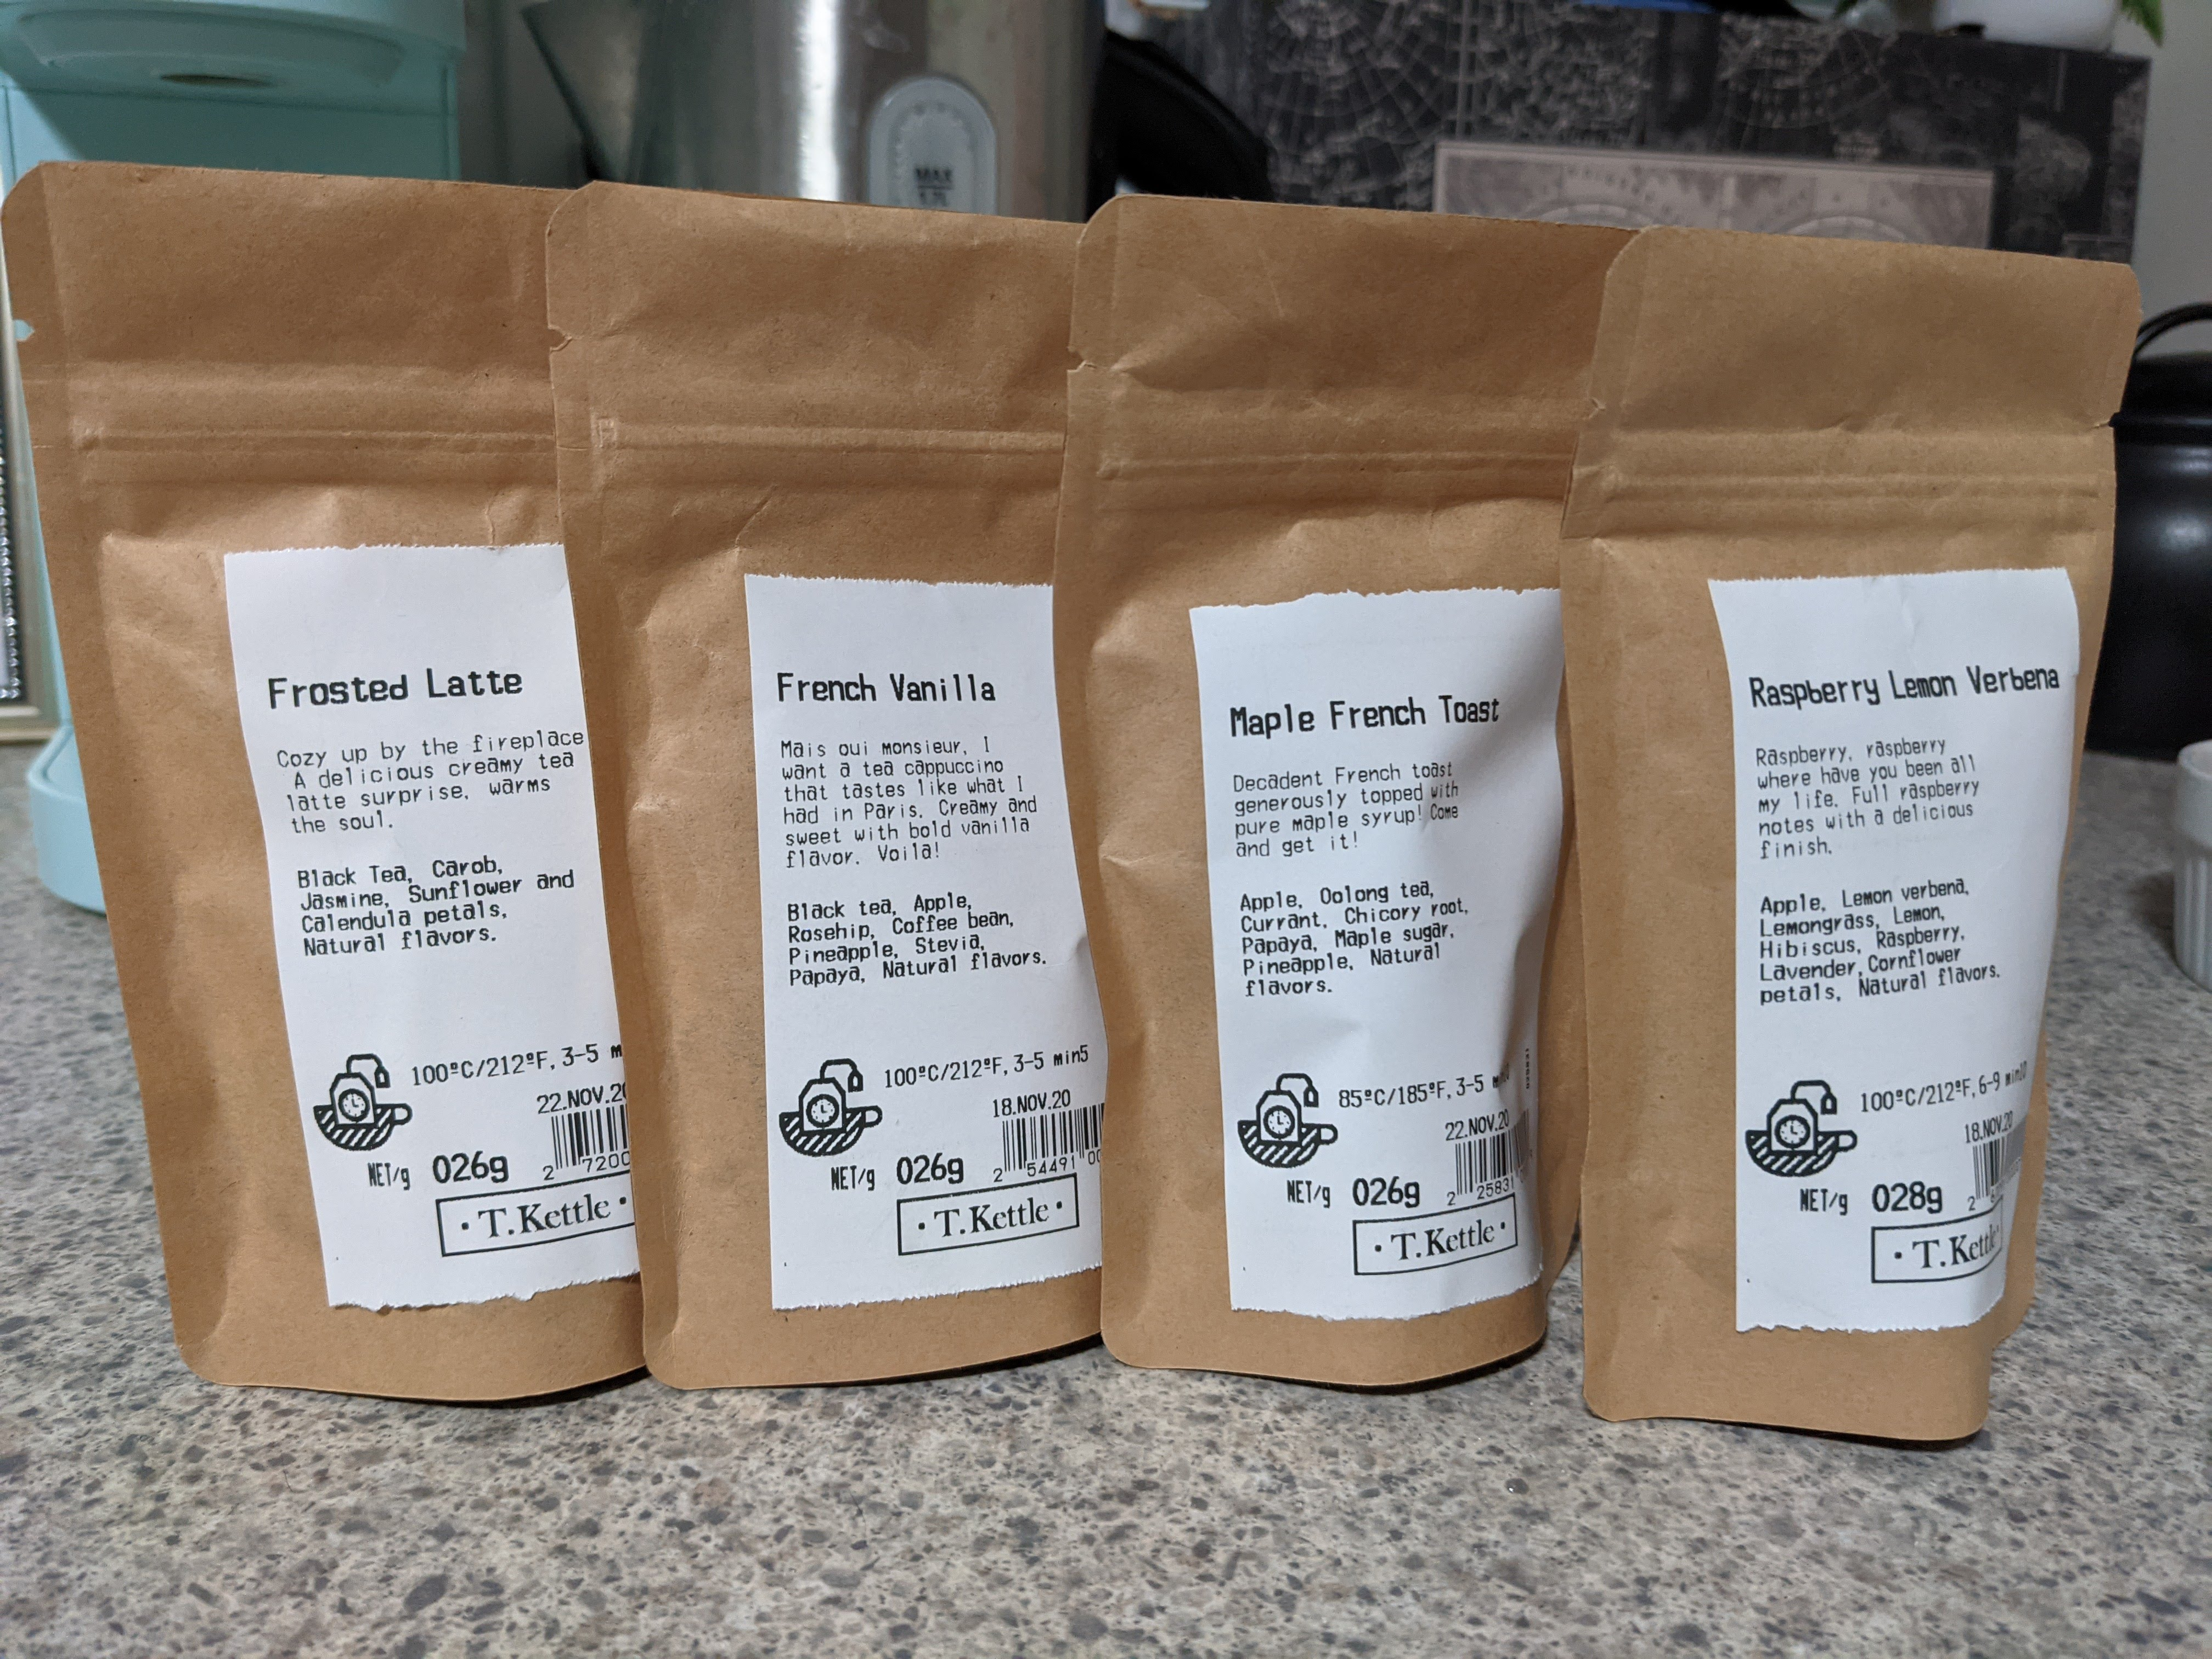 Four brown bags of tea, their names listed in order in the paragraph below.